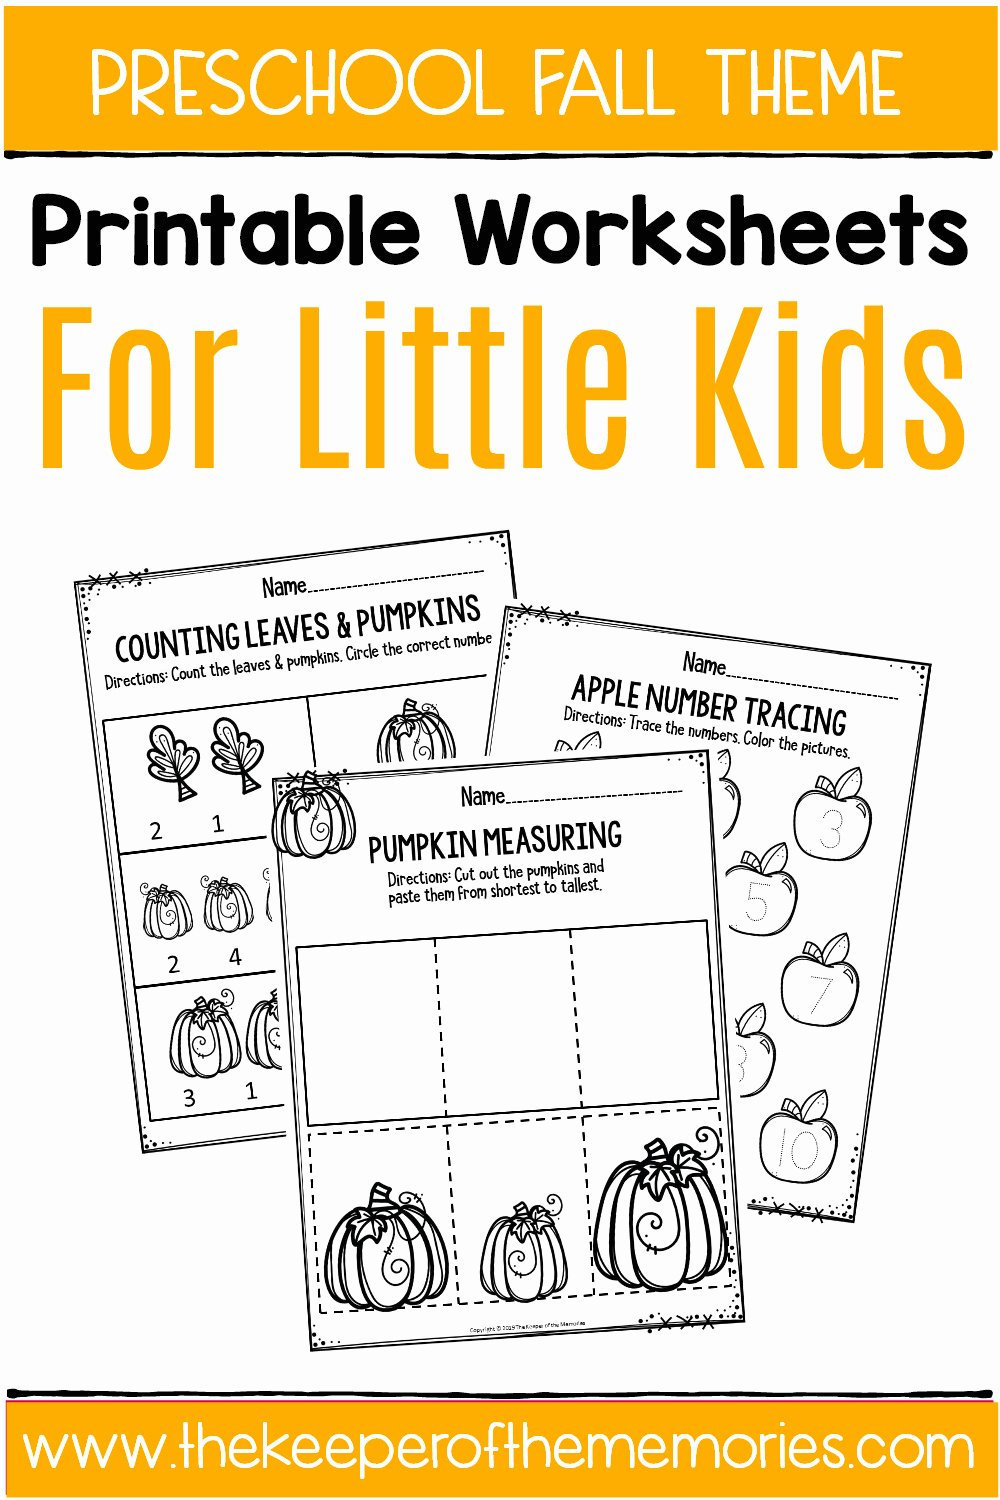 Fall Worksheets for Preschoolers New Fall Printable Preschool Worksheets the Keeper Of the Memories